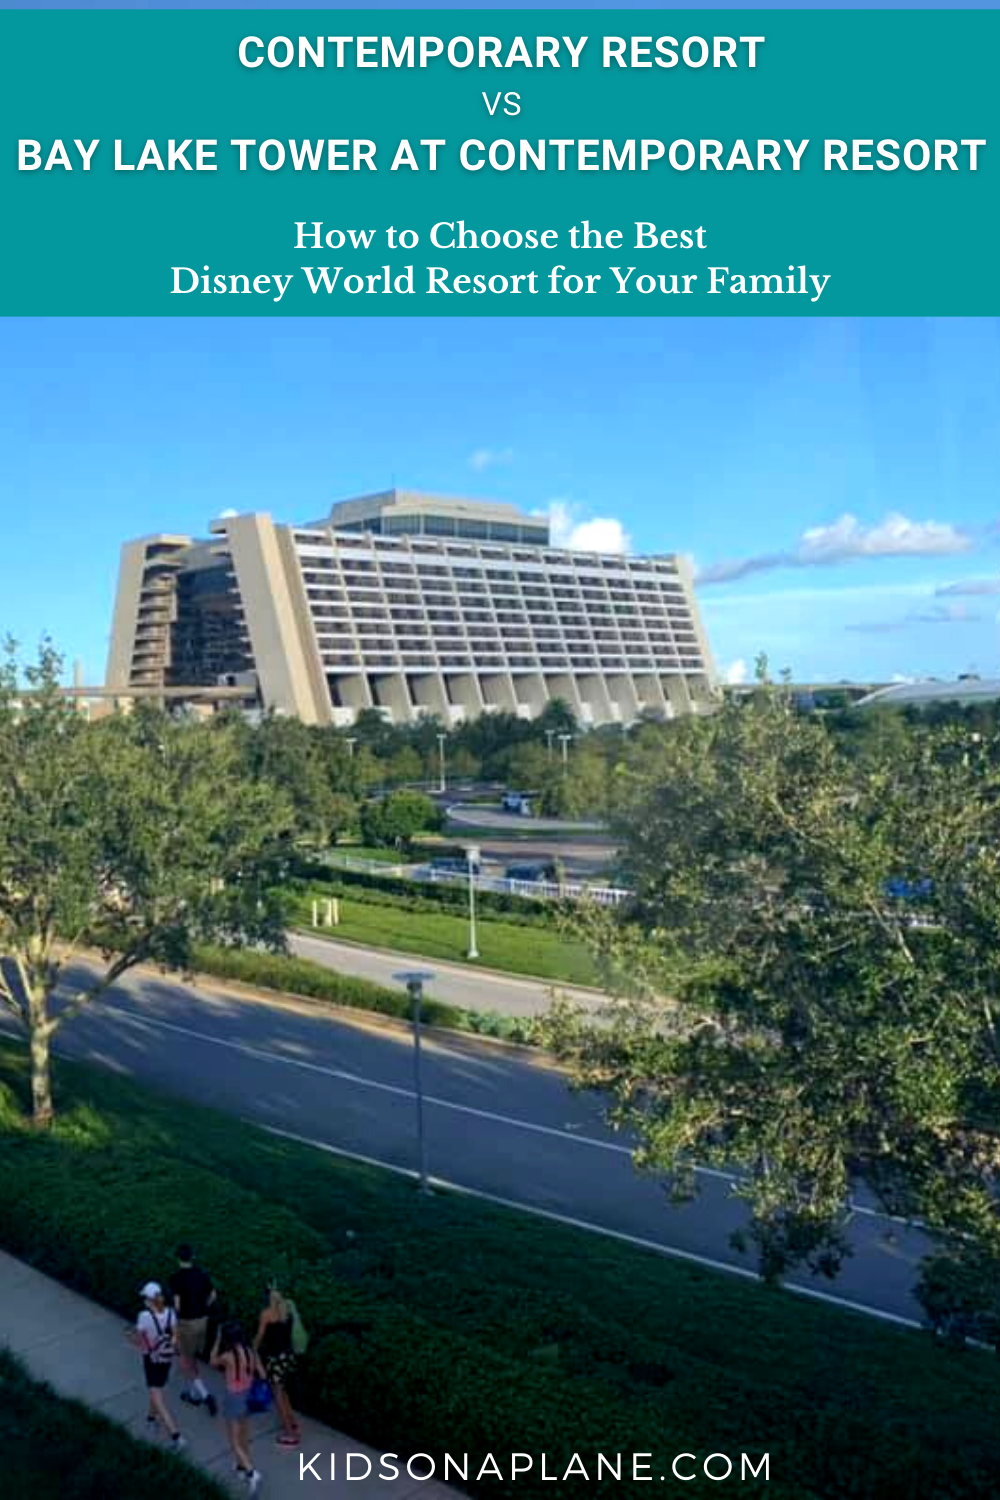 Contemporary Resort vs Bay Lake Tower - Which is the Best Disney World Resort for Your Family